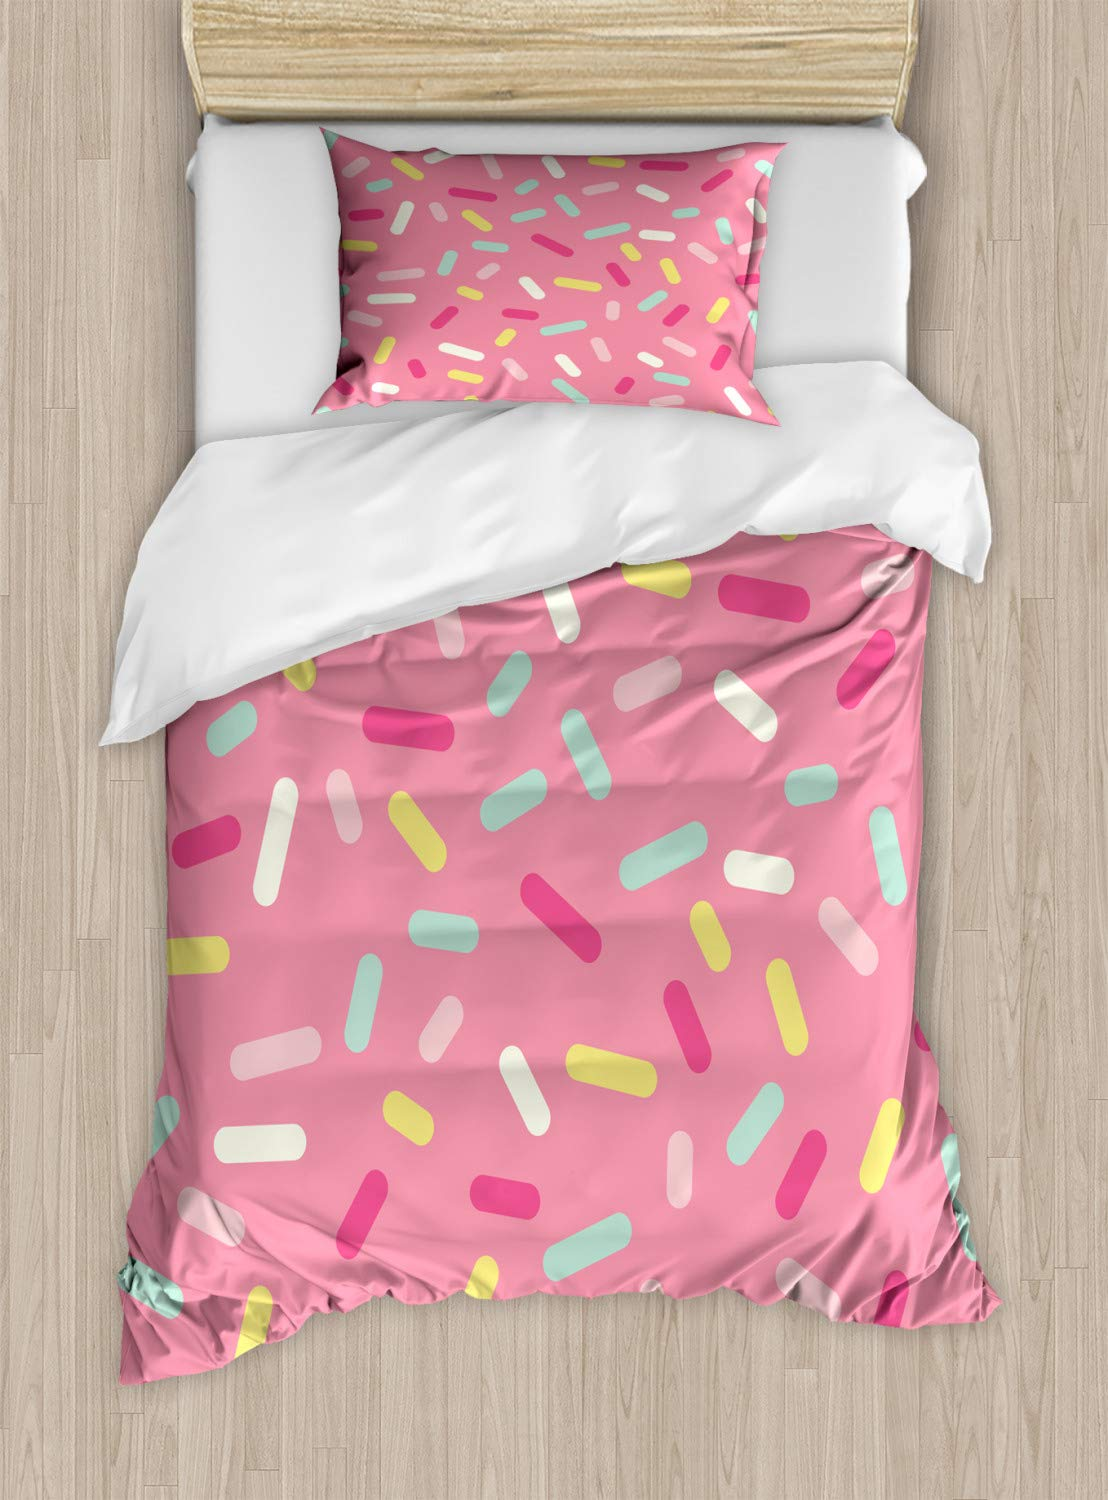 Ambesonne Pink and White Duvet Cover Set Twin Size, Abstract Pattern of Colorful Donut Sprinkles Tasty Food Bakery Theme, Decorative 2 Piece Bedding Set with 1 Pillow Sham, Pink Yellow